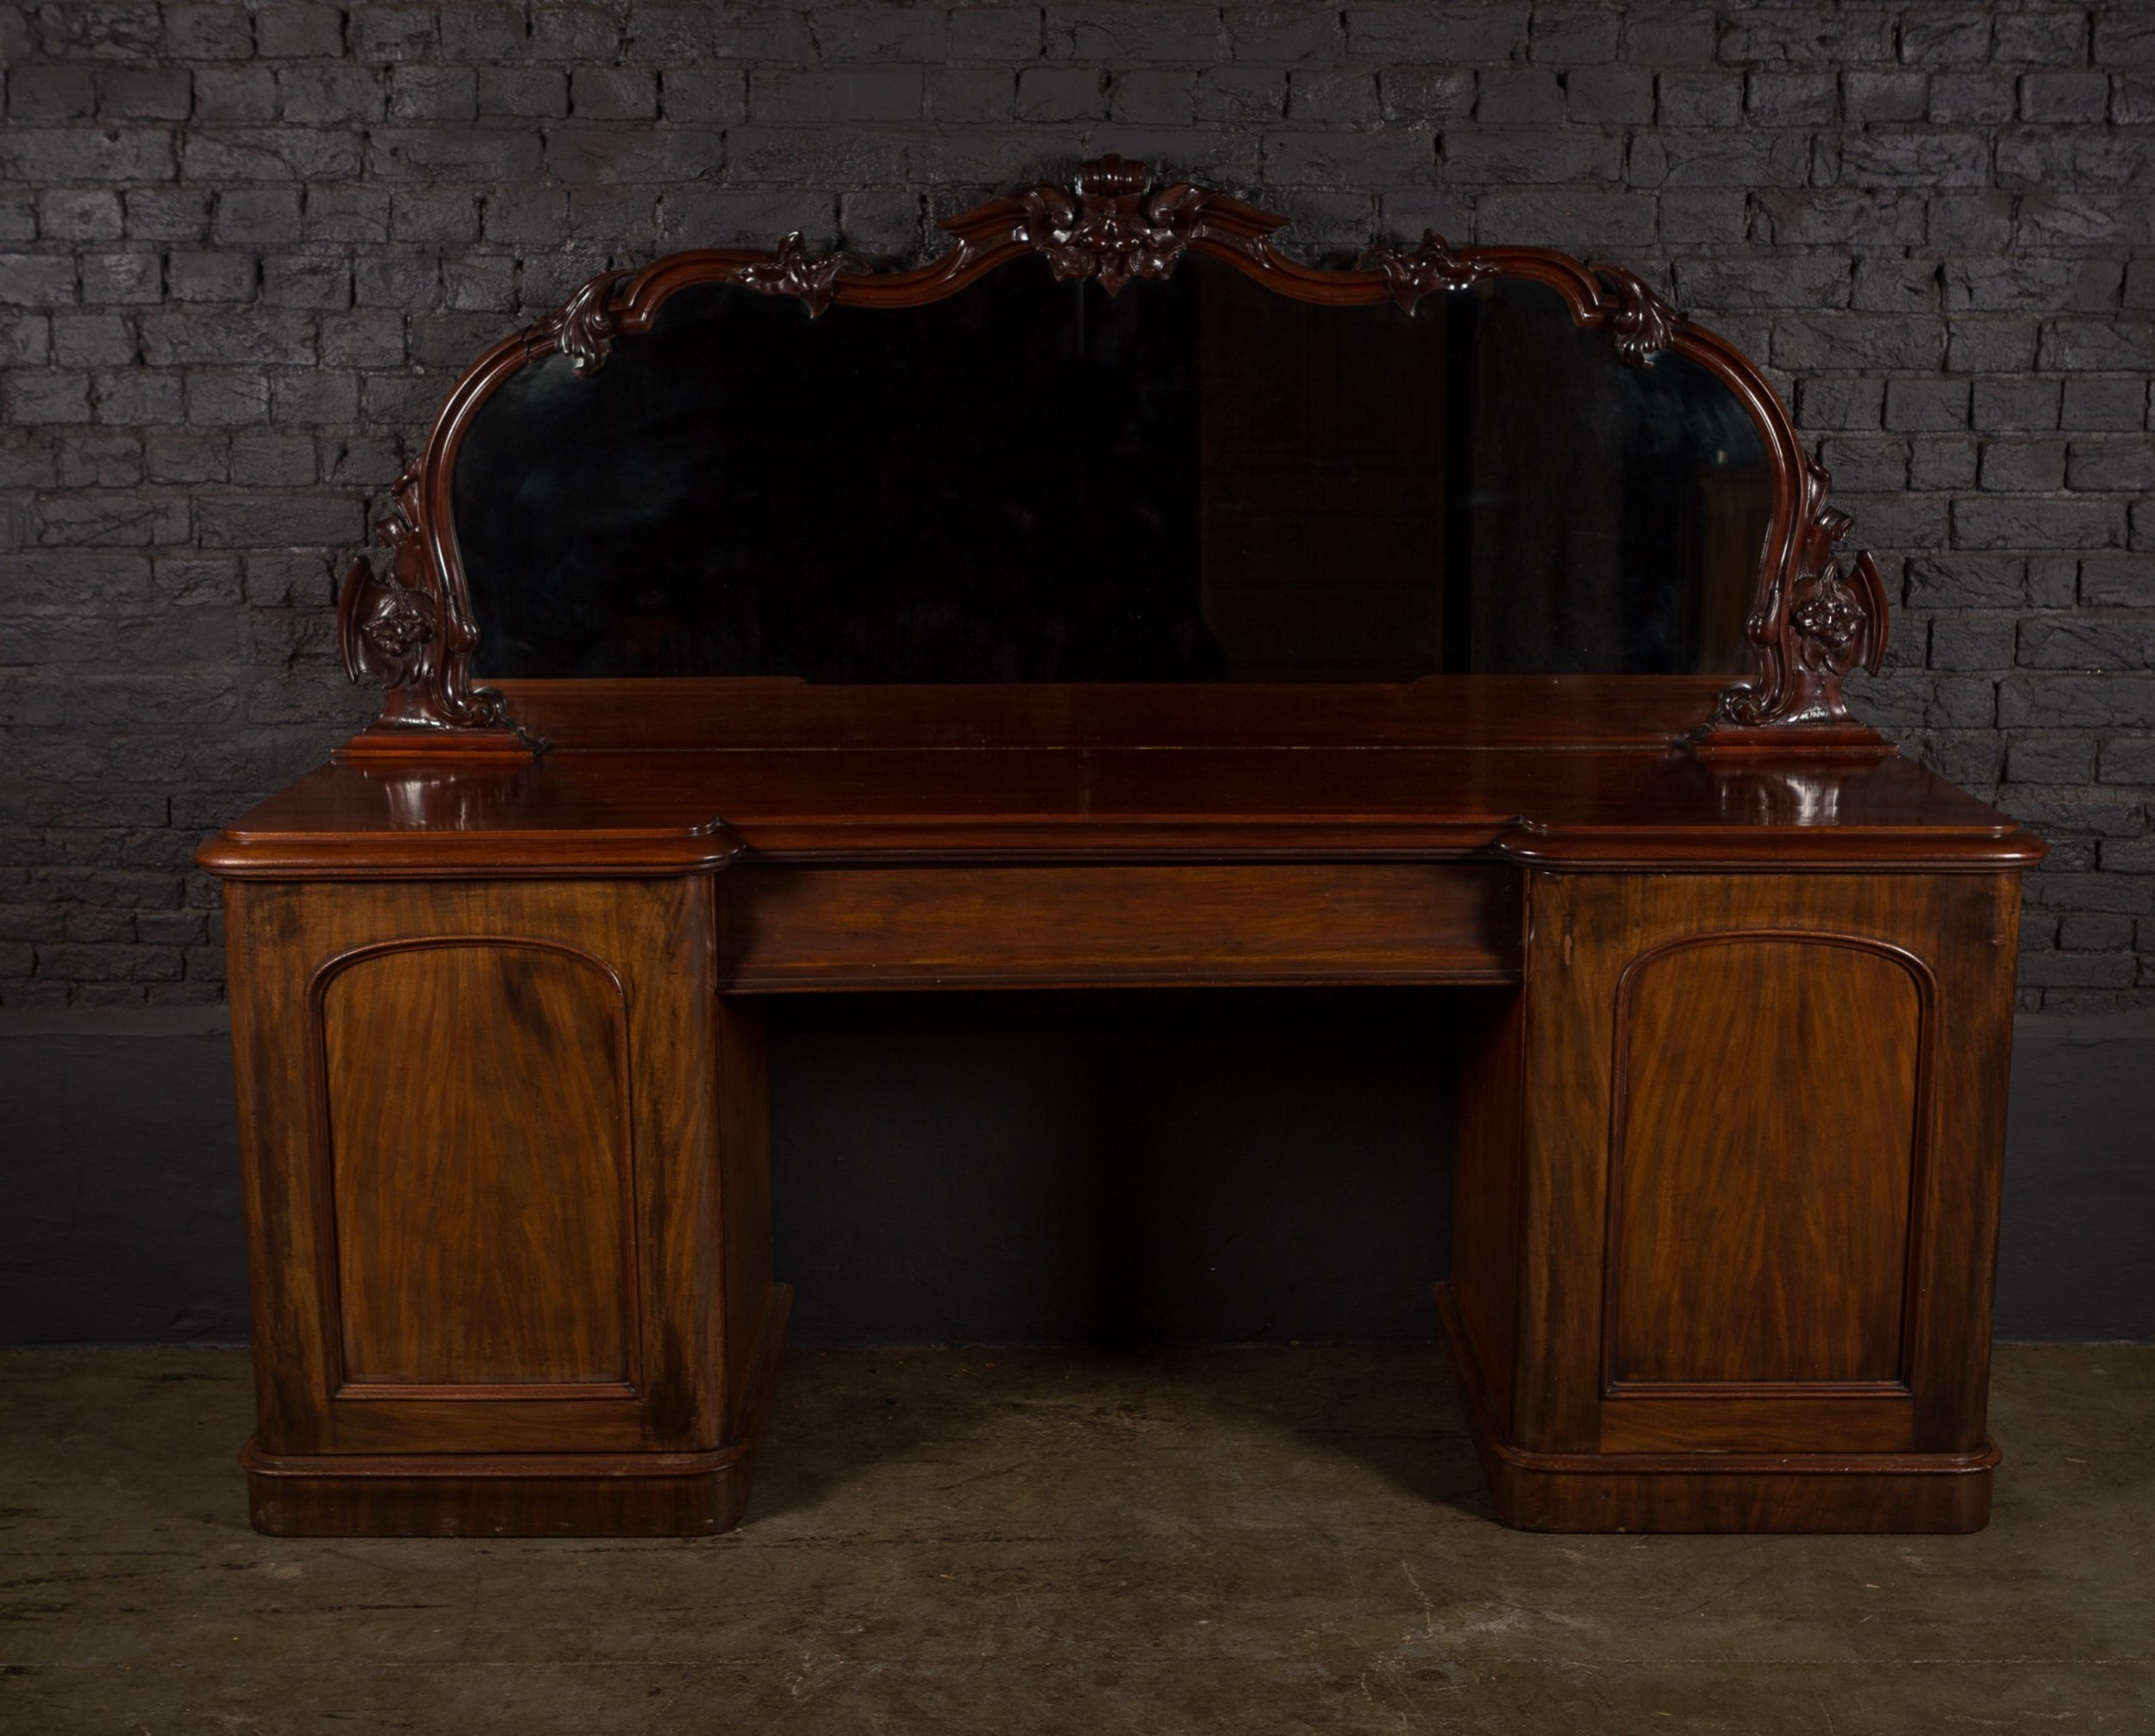 19th c rich mahogany breakfront sideboard with raised gallery mirror